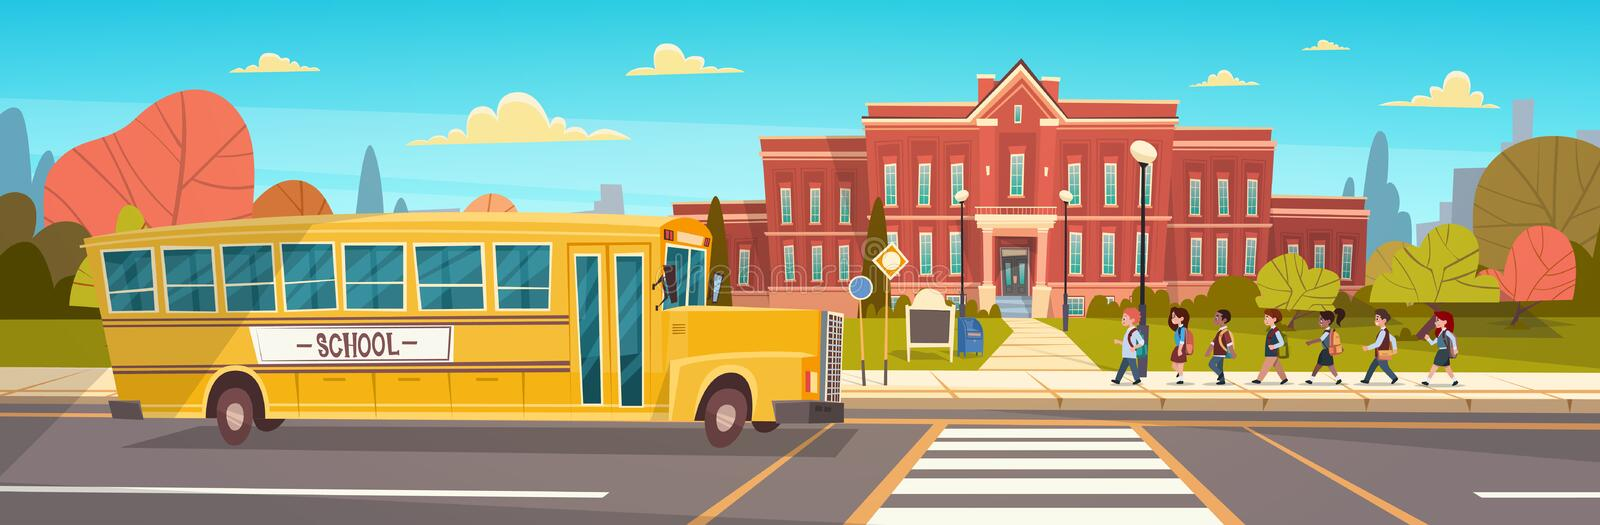 Group Of Pupils Mix Race Walking To School Building From Yellow Bus Primary Schoolchildren Students. Flat Vector Illustration royalty free illustration